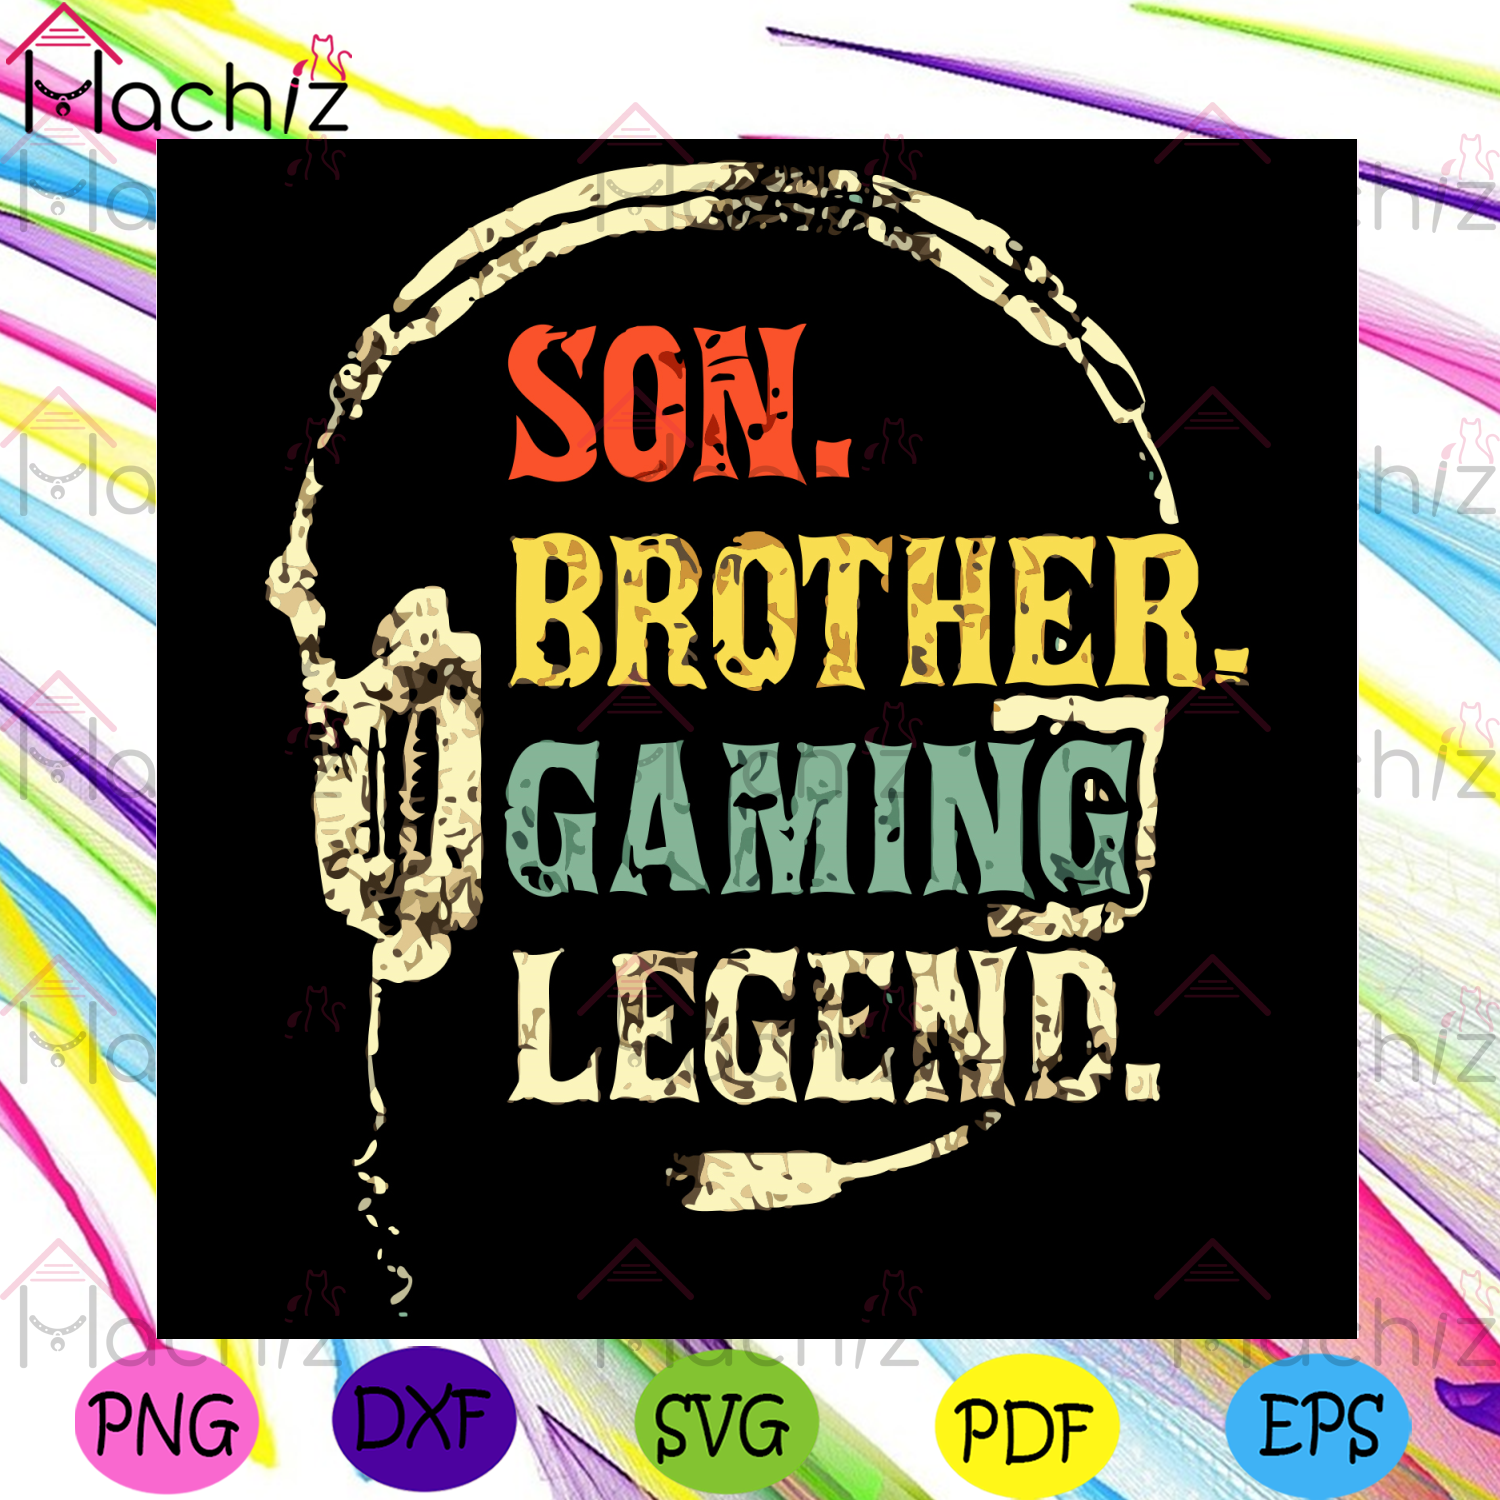 Son Brother Gaming Legend Svg, Trending Svg, Game Svg, Gaming Svg, Gamers Svg, Gaming Legend Svg, Game Gifts Svg, Headphone Svg, Player Svg, Game Fight Svg, Match Svg, Game Lovers Svg, Funny Svg